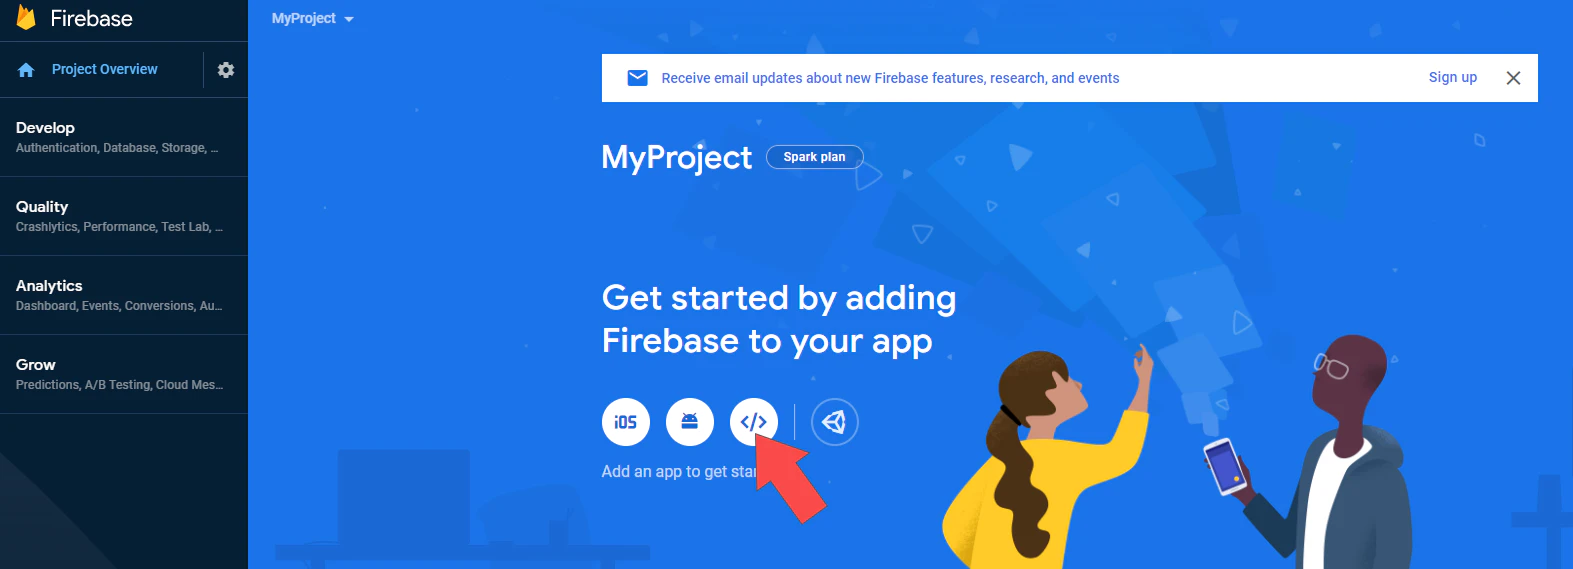 images/how-to-create-a-firebase-project-step-2.png